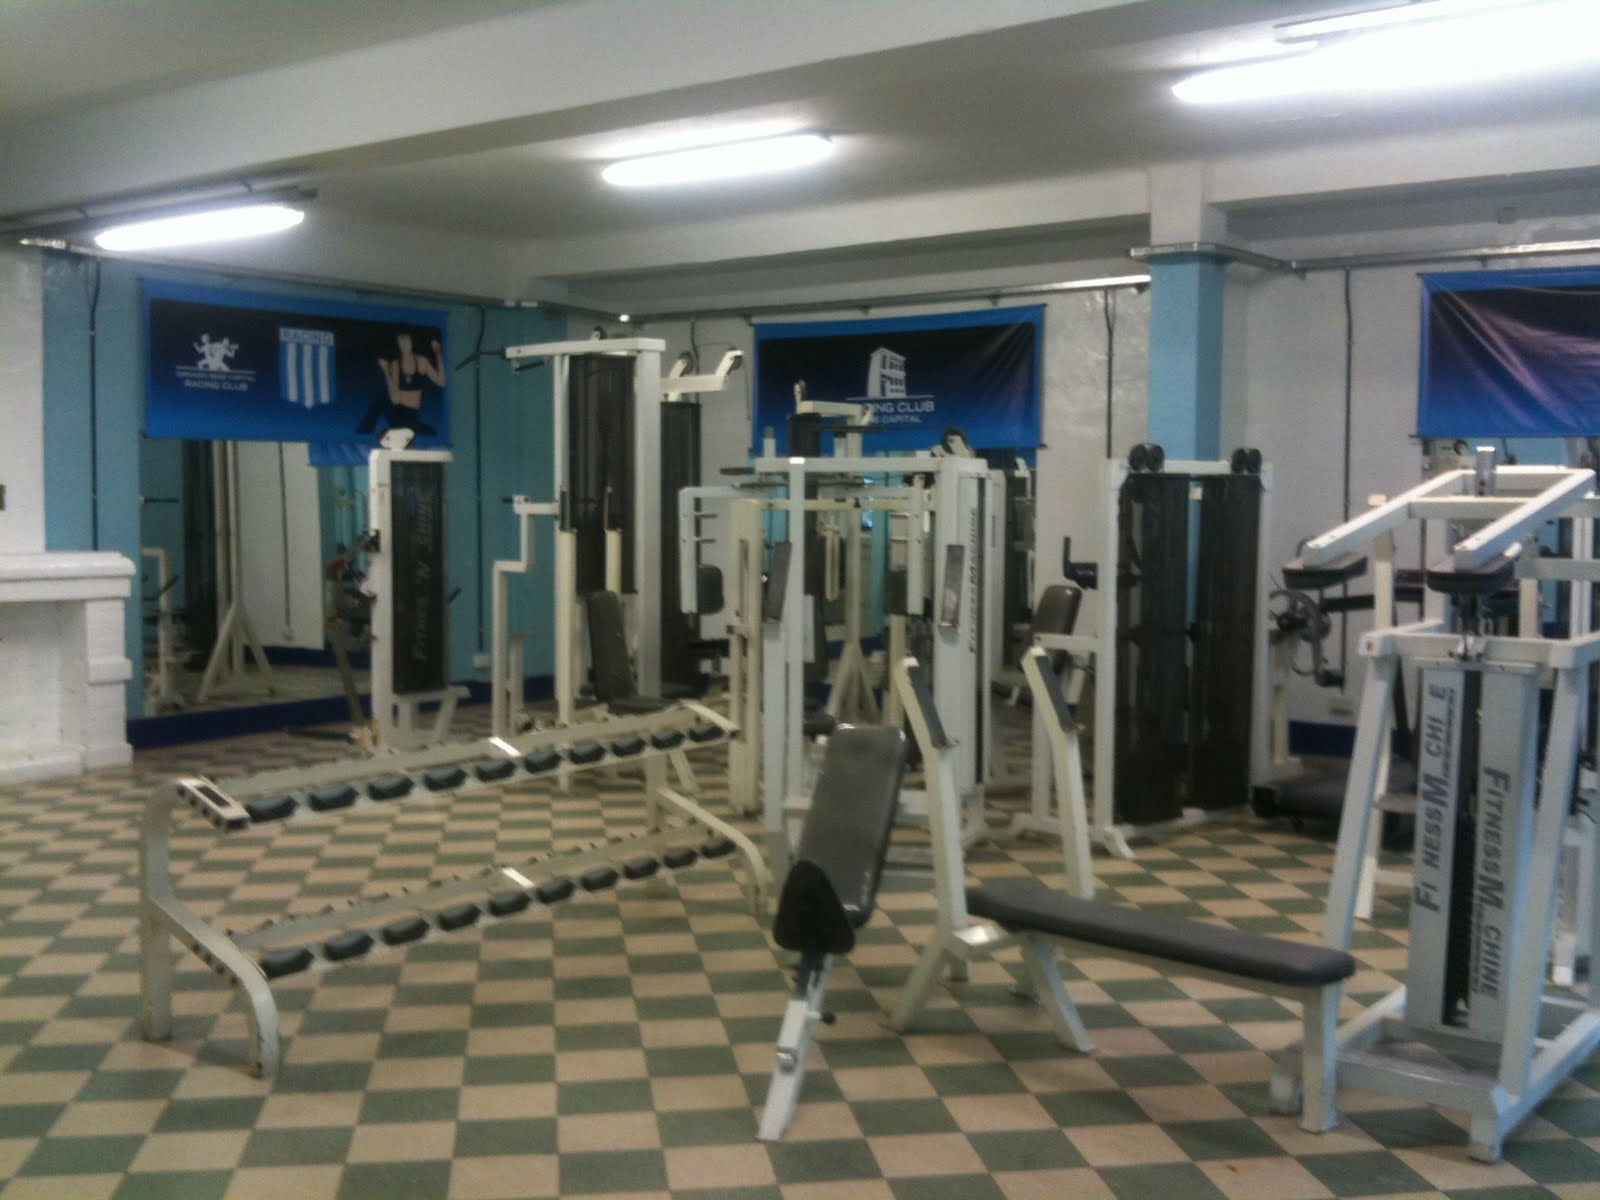 Racing inauguro su propio gimnasio en capital mangakd for Gimnasio 30 minutos